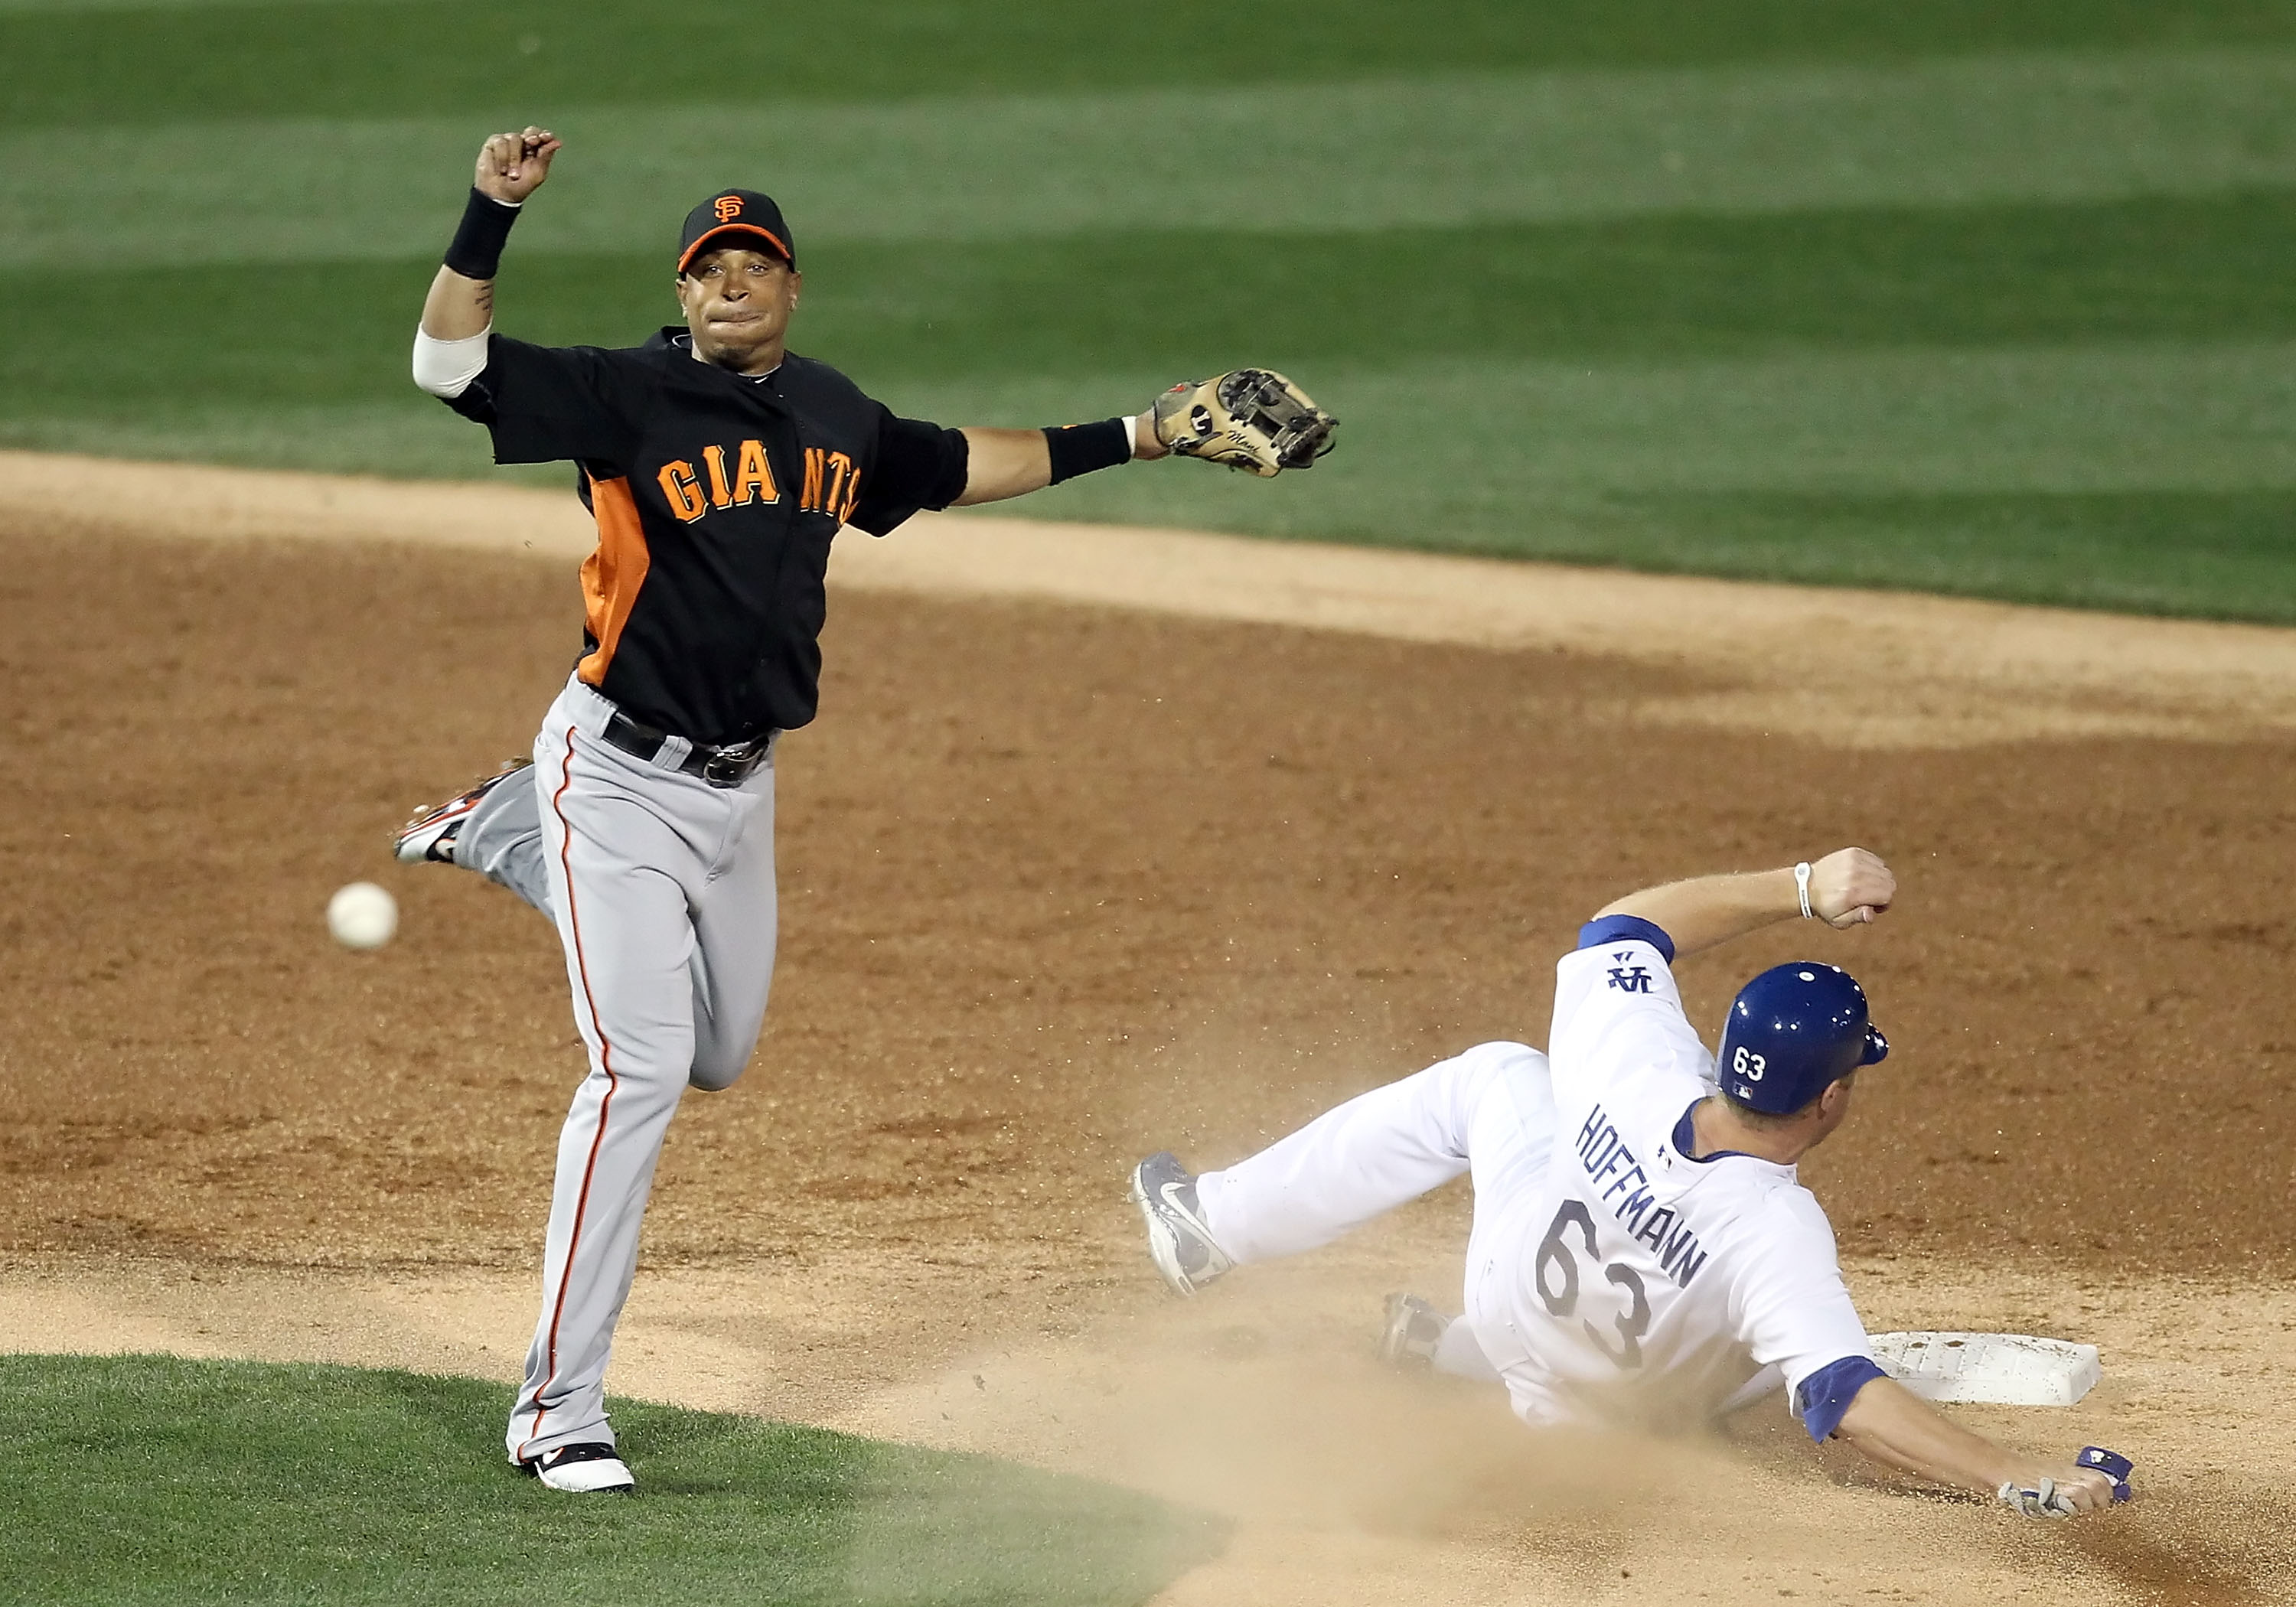 GLENDALE, AZ - MARCH 04:  Infielder Emmanuel Burriss #2 of the San Francisco Giants throws over the sliding Jamie Hoffmann #63 of the Los Angeles Dodgers to complete a double play during the second inning of the spring training game at Camelback Ranch on